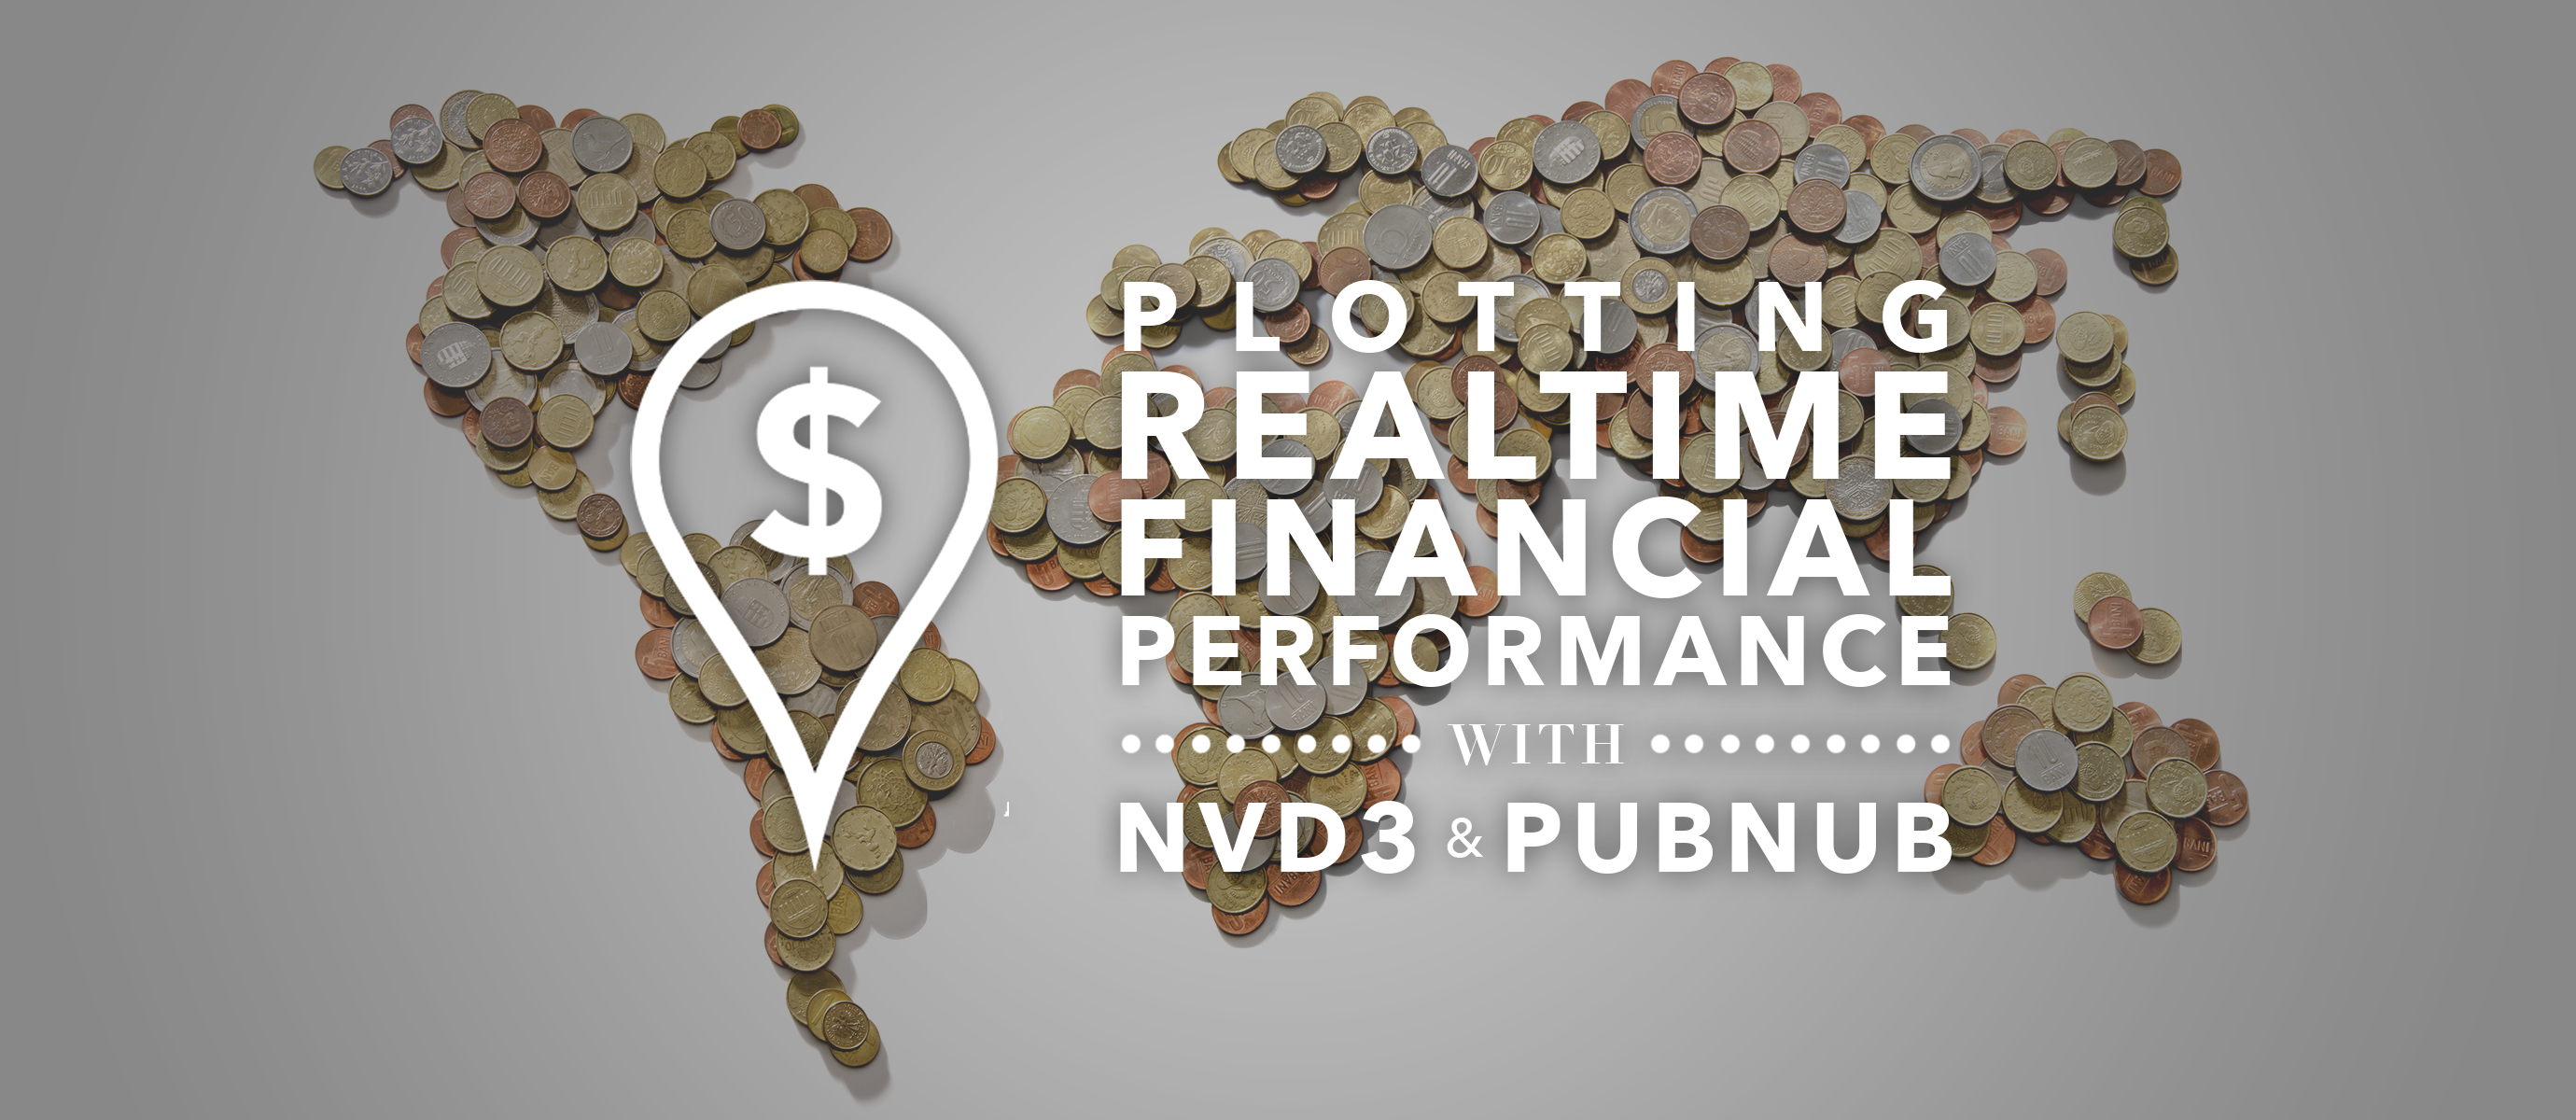 Plotting Realtime Data of Financial Performance with NVD3